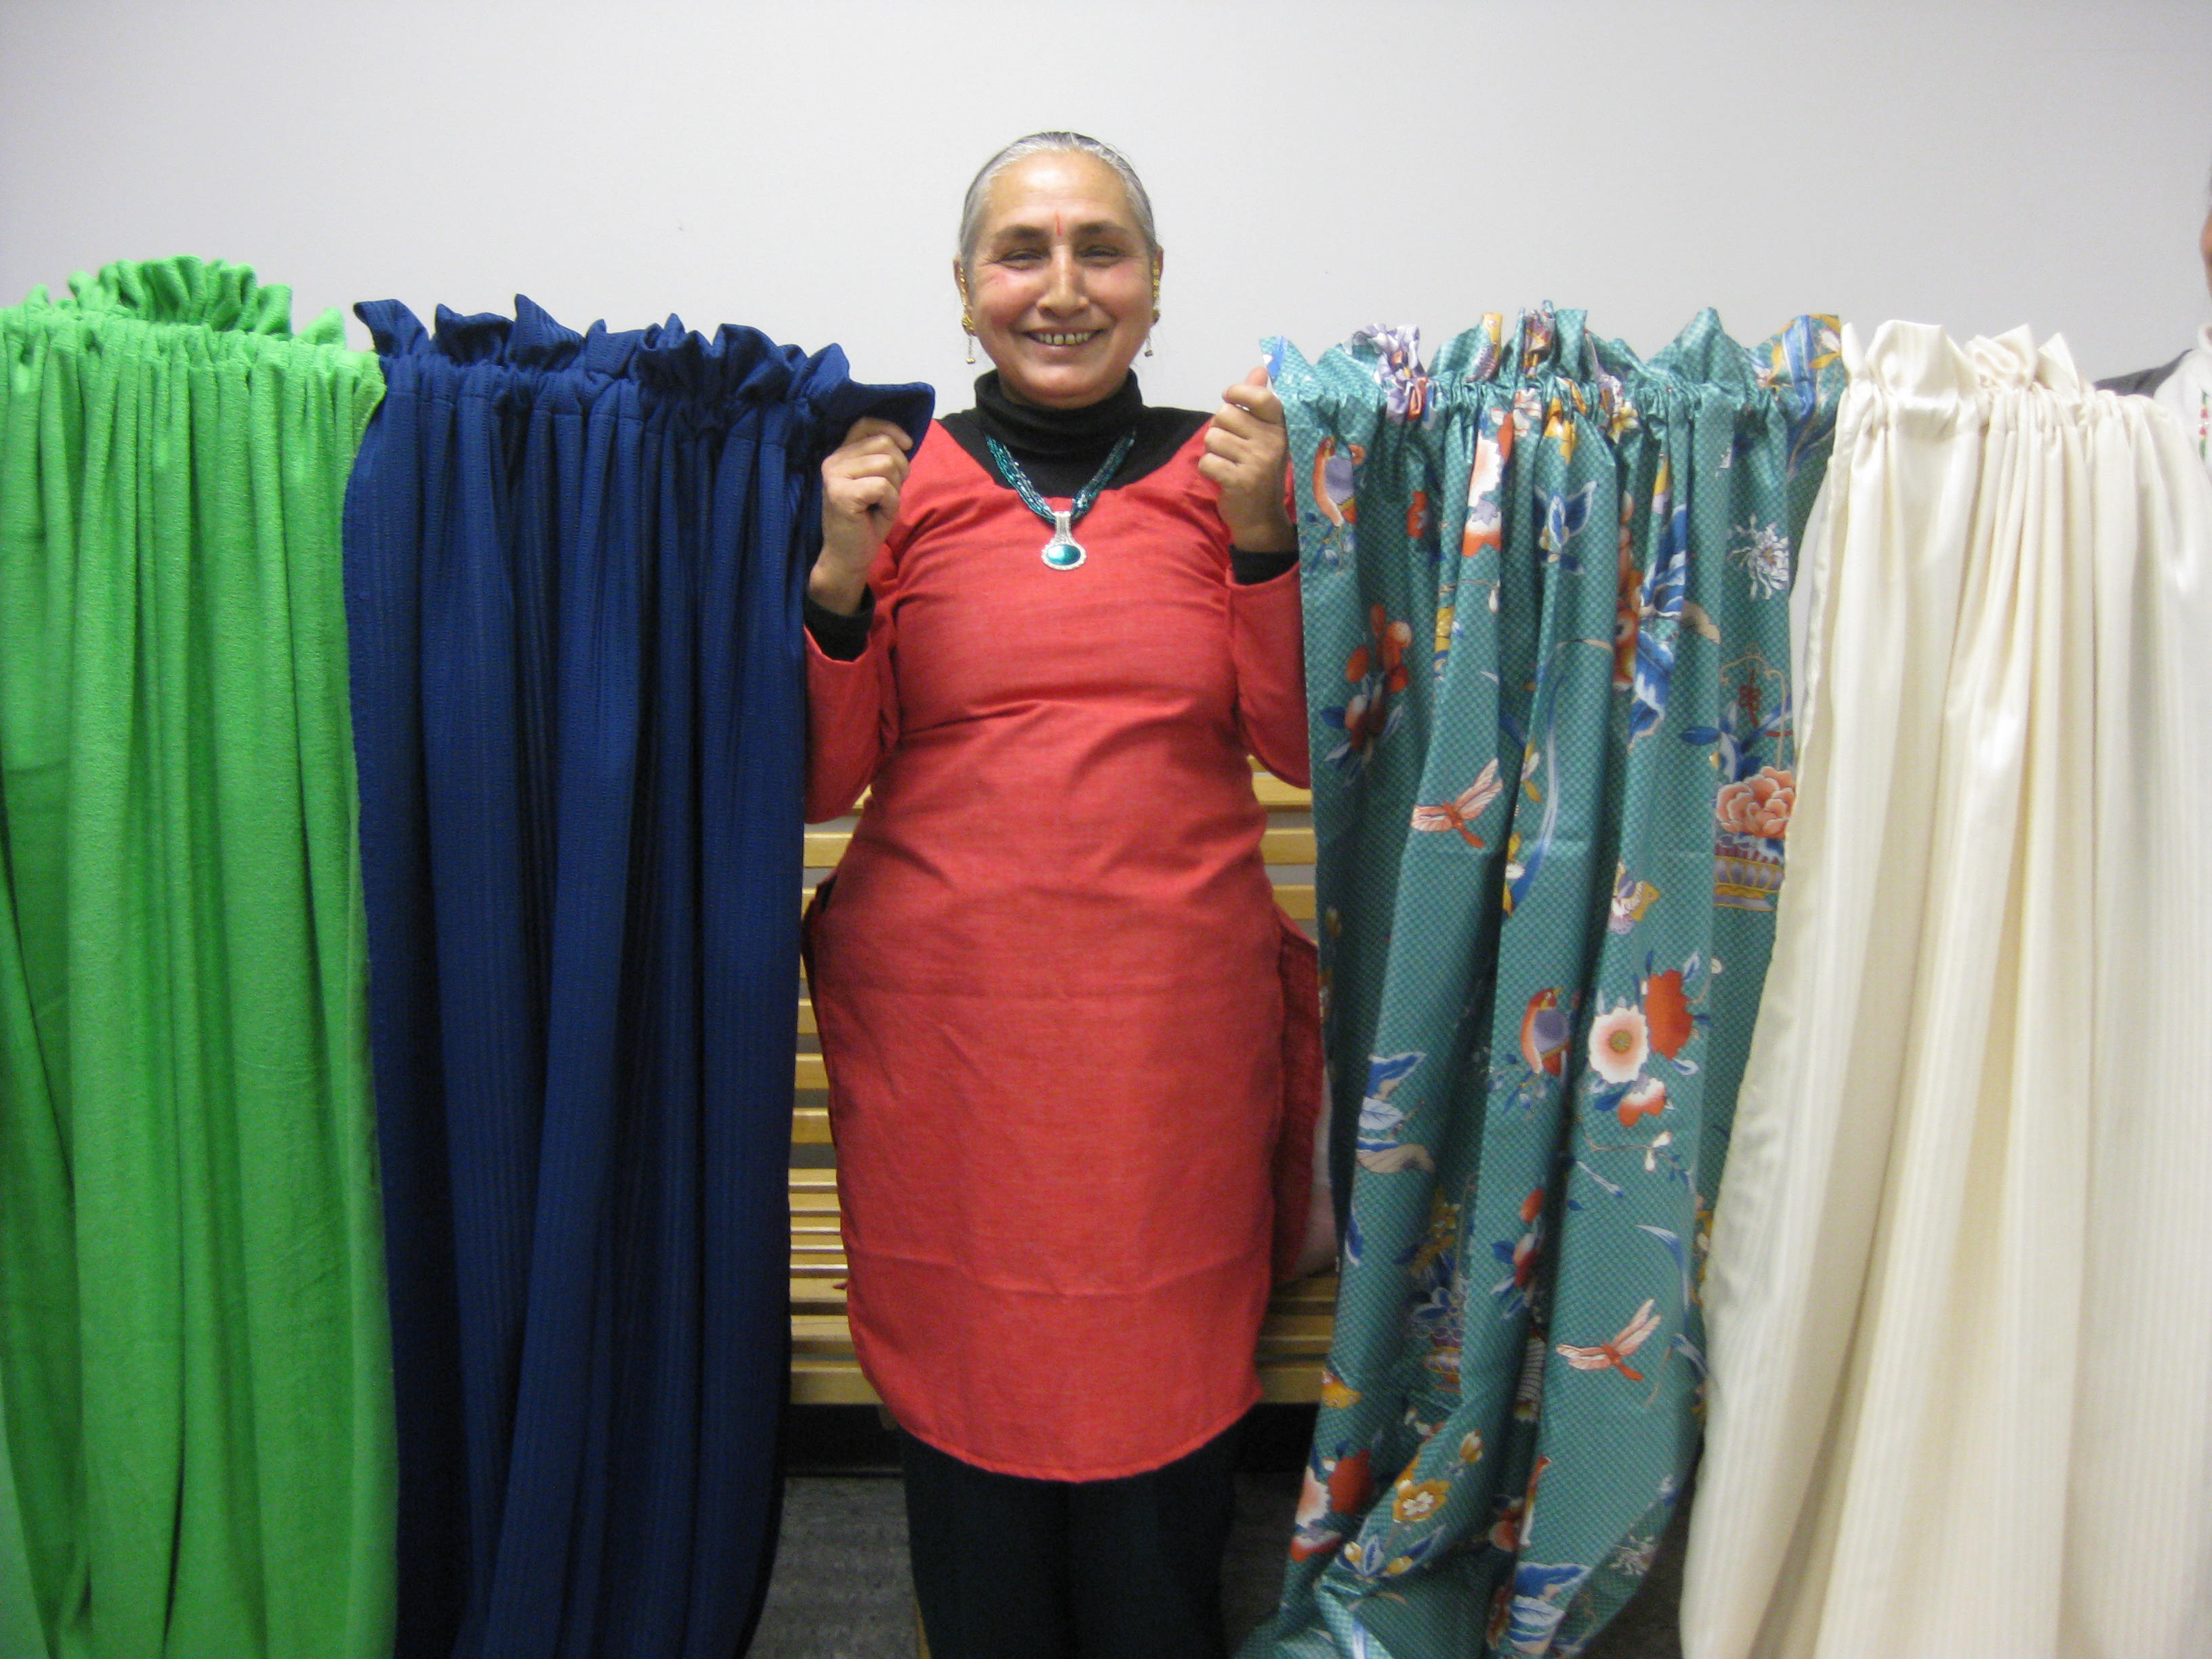 One sewing class graduate makes curtains for new arrivals